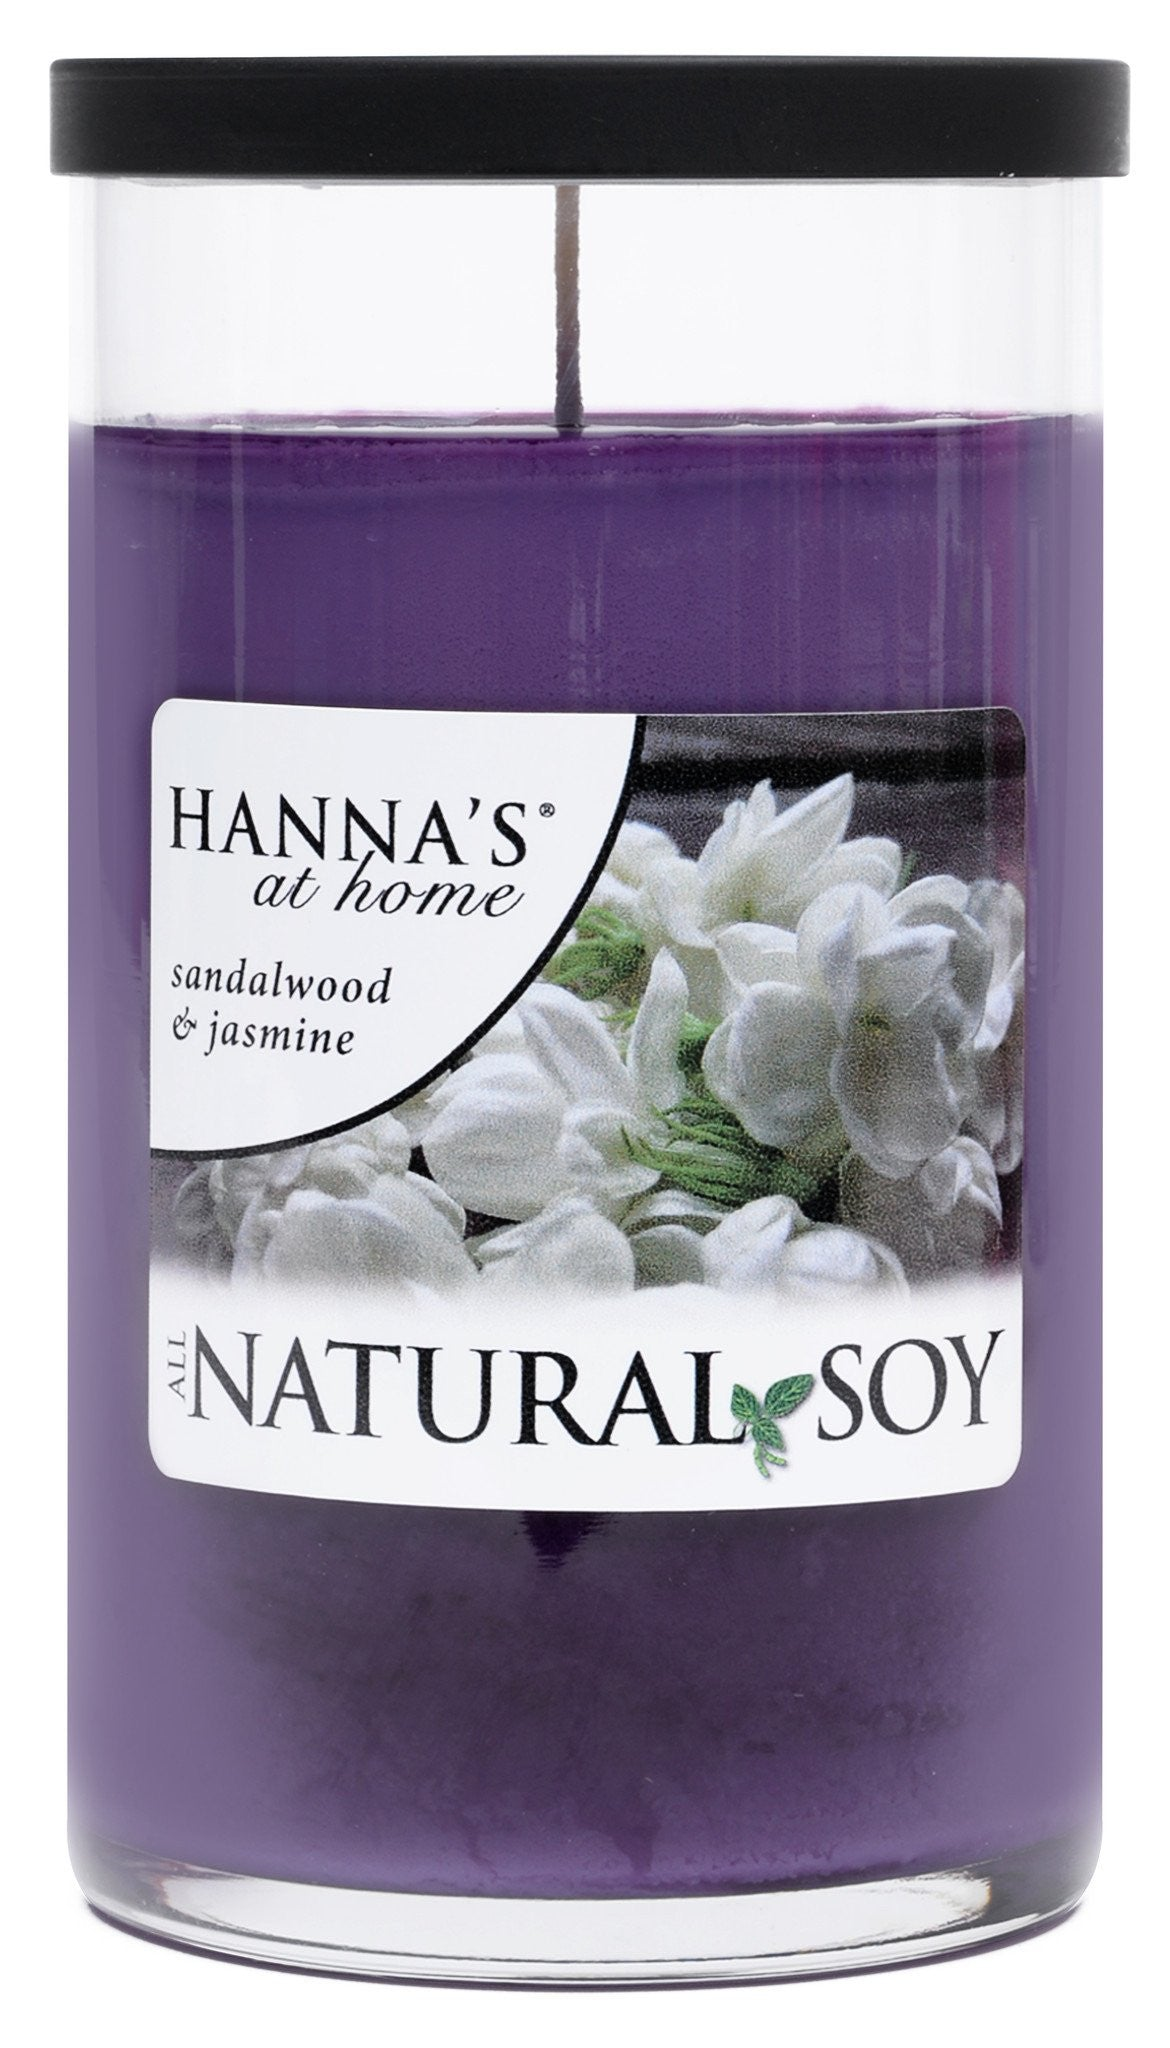 Natural Soy Sandalwood & Jasmine Scented Soy Candle - Candlemart.com - 2